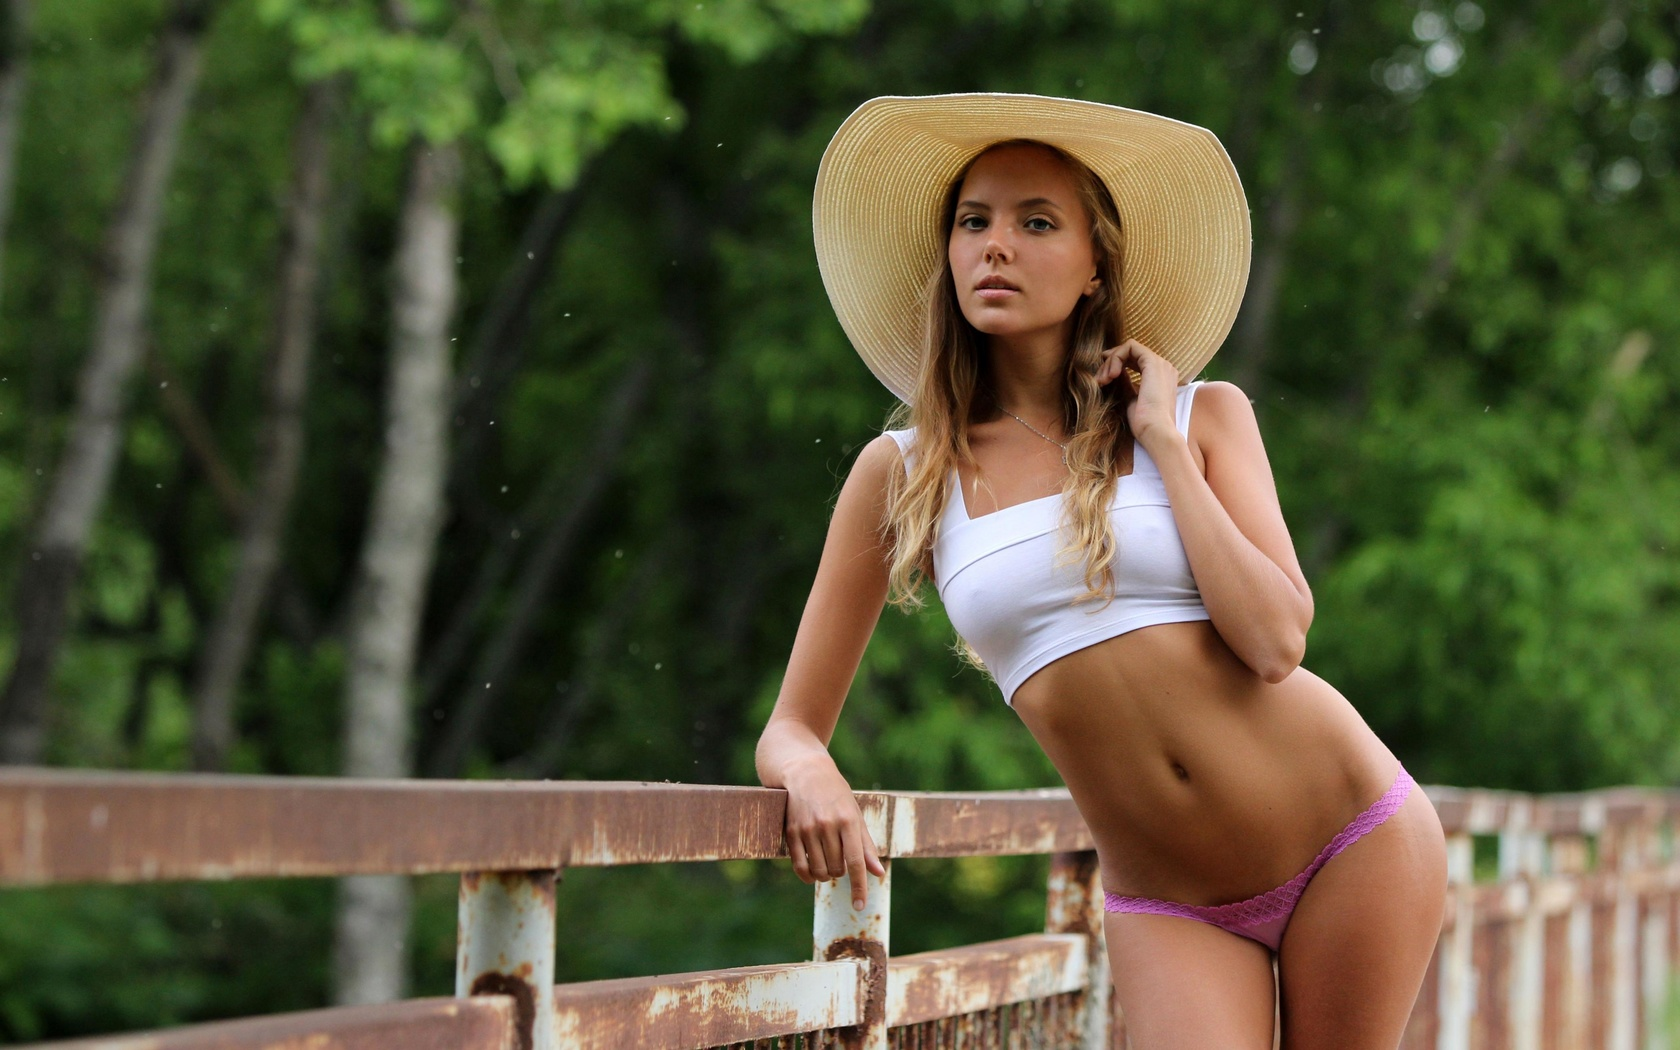 katya clover, clover, mango, caramel, auburn, panties, top, hat, outdoors, tanned, ass, hi-q